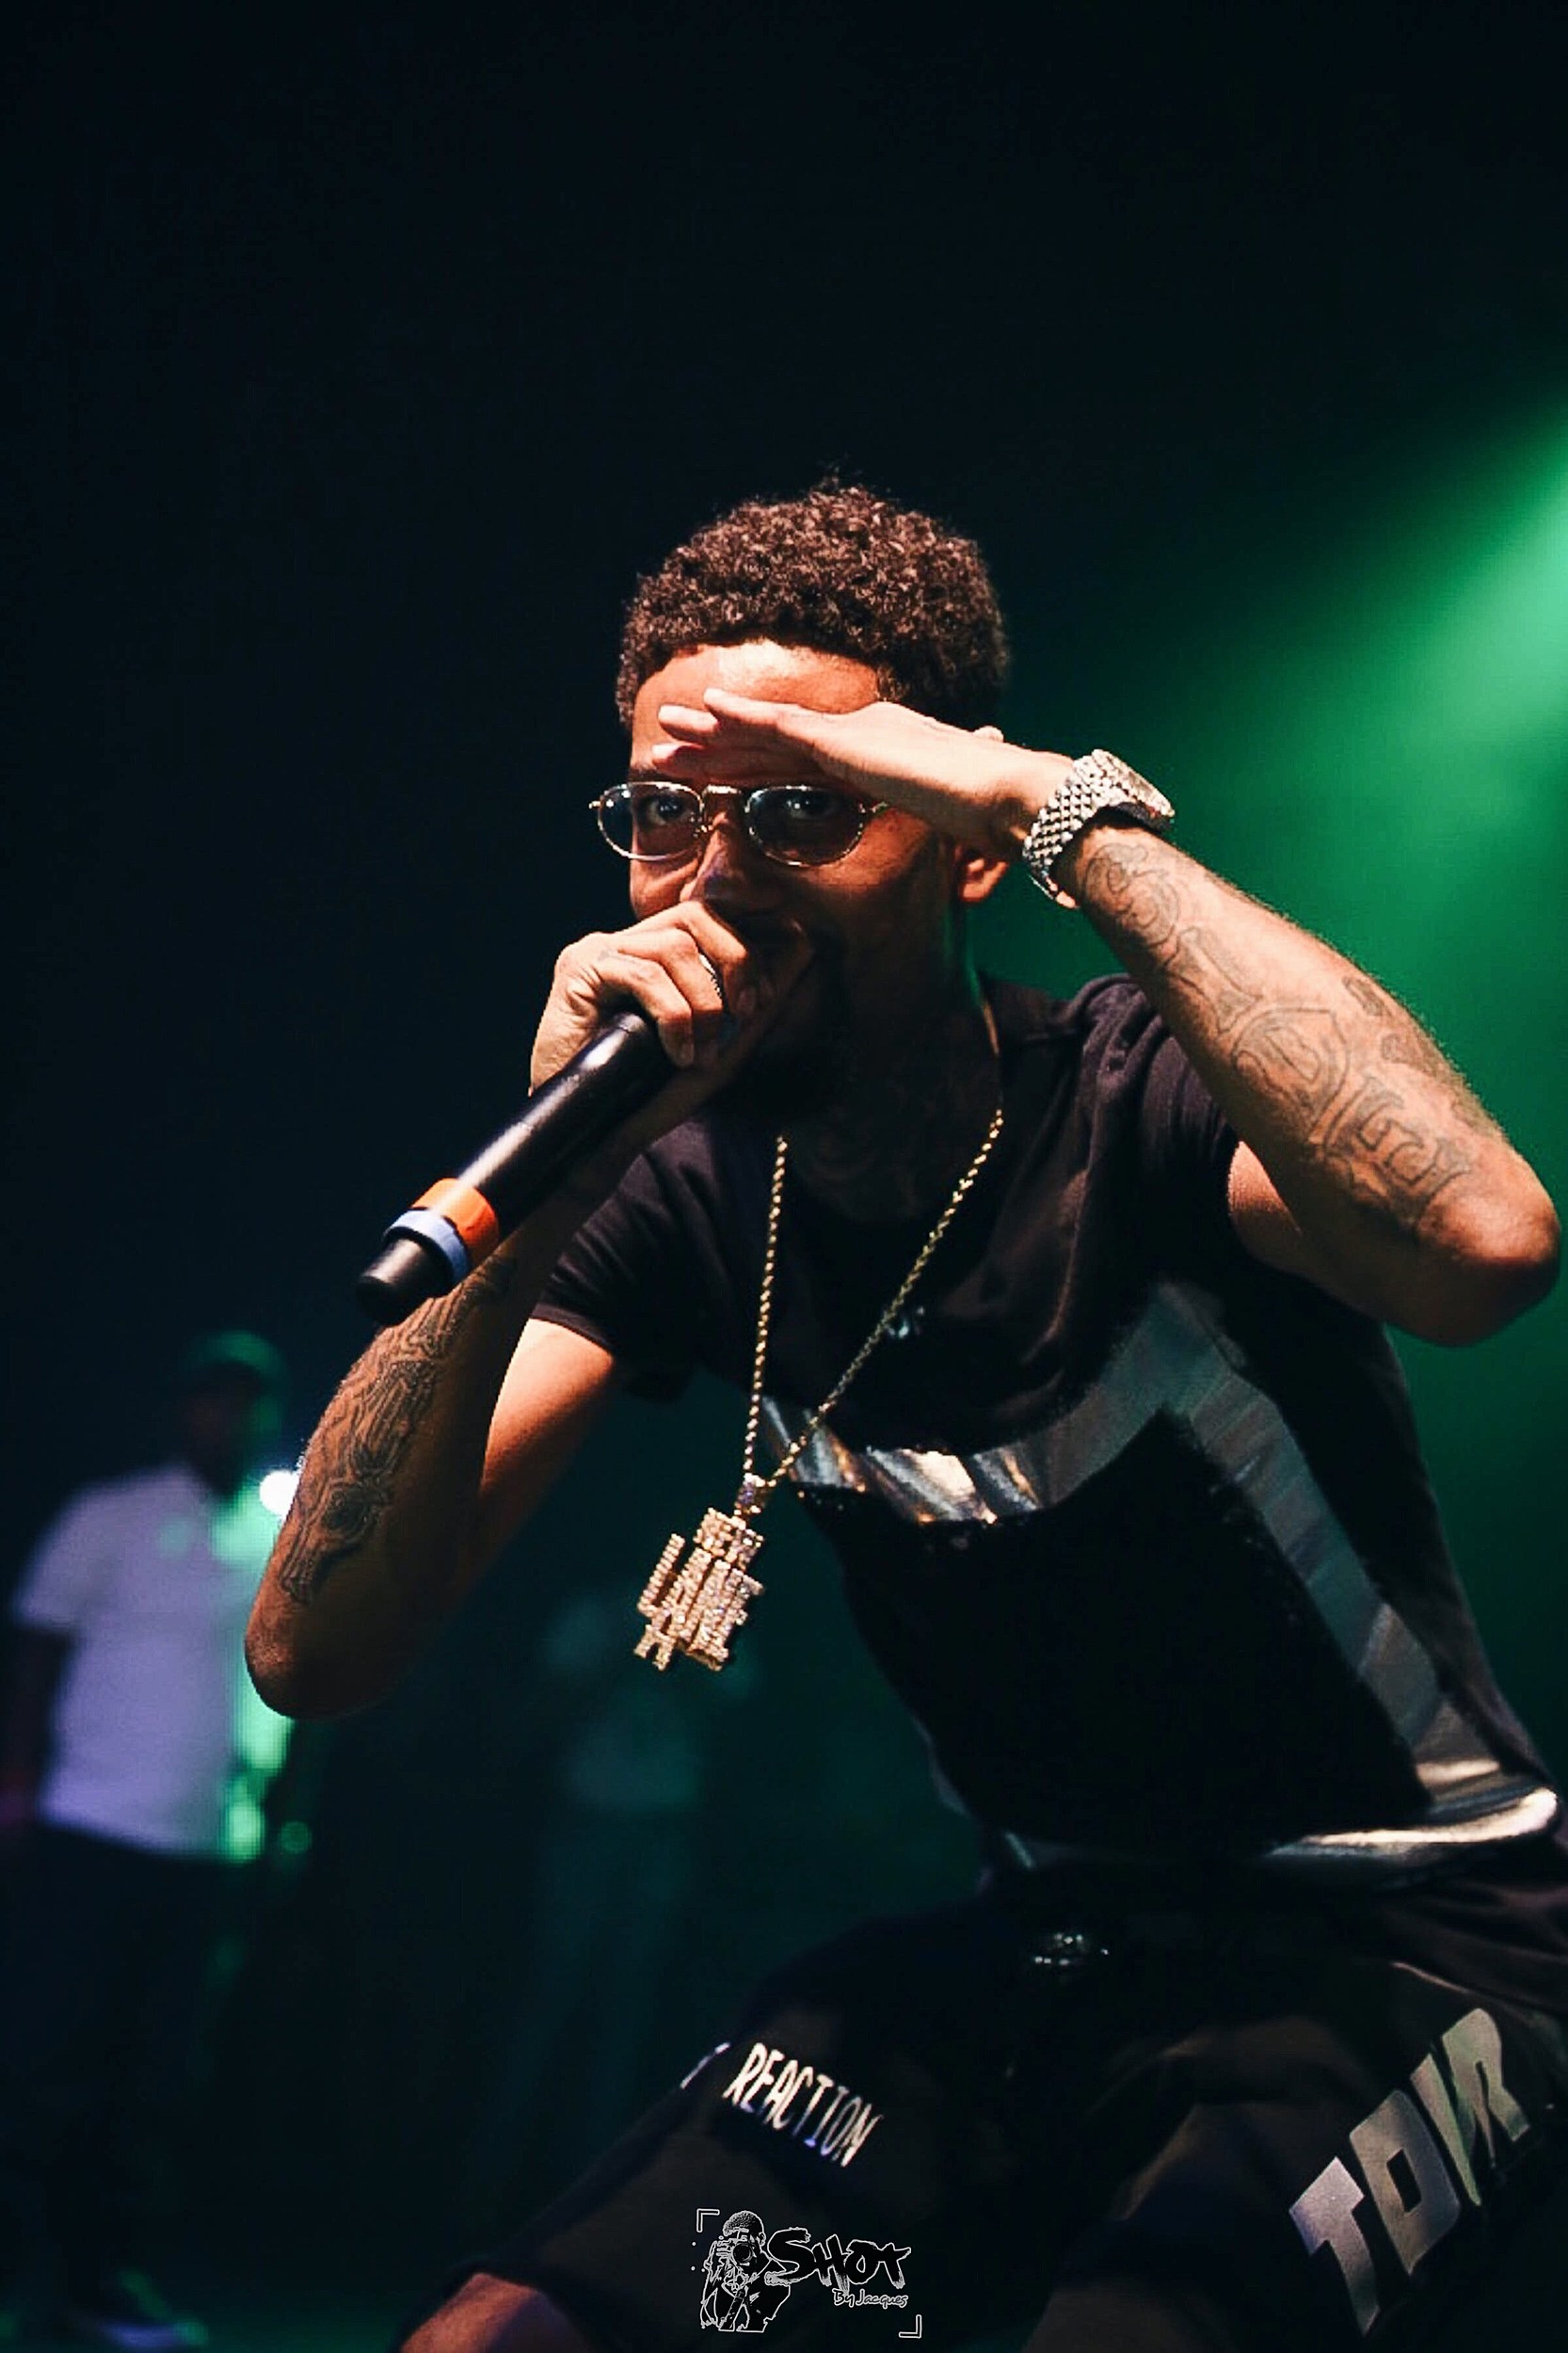 PnB Rock Shows Versatility on Two New Songs 'Feelins' and 'Time' -